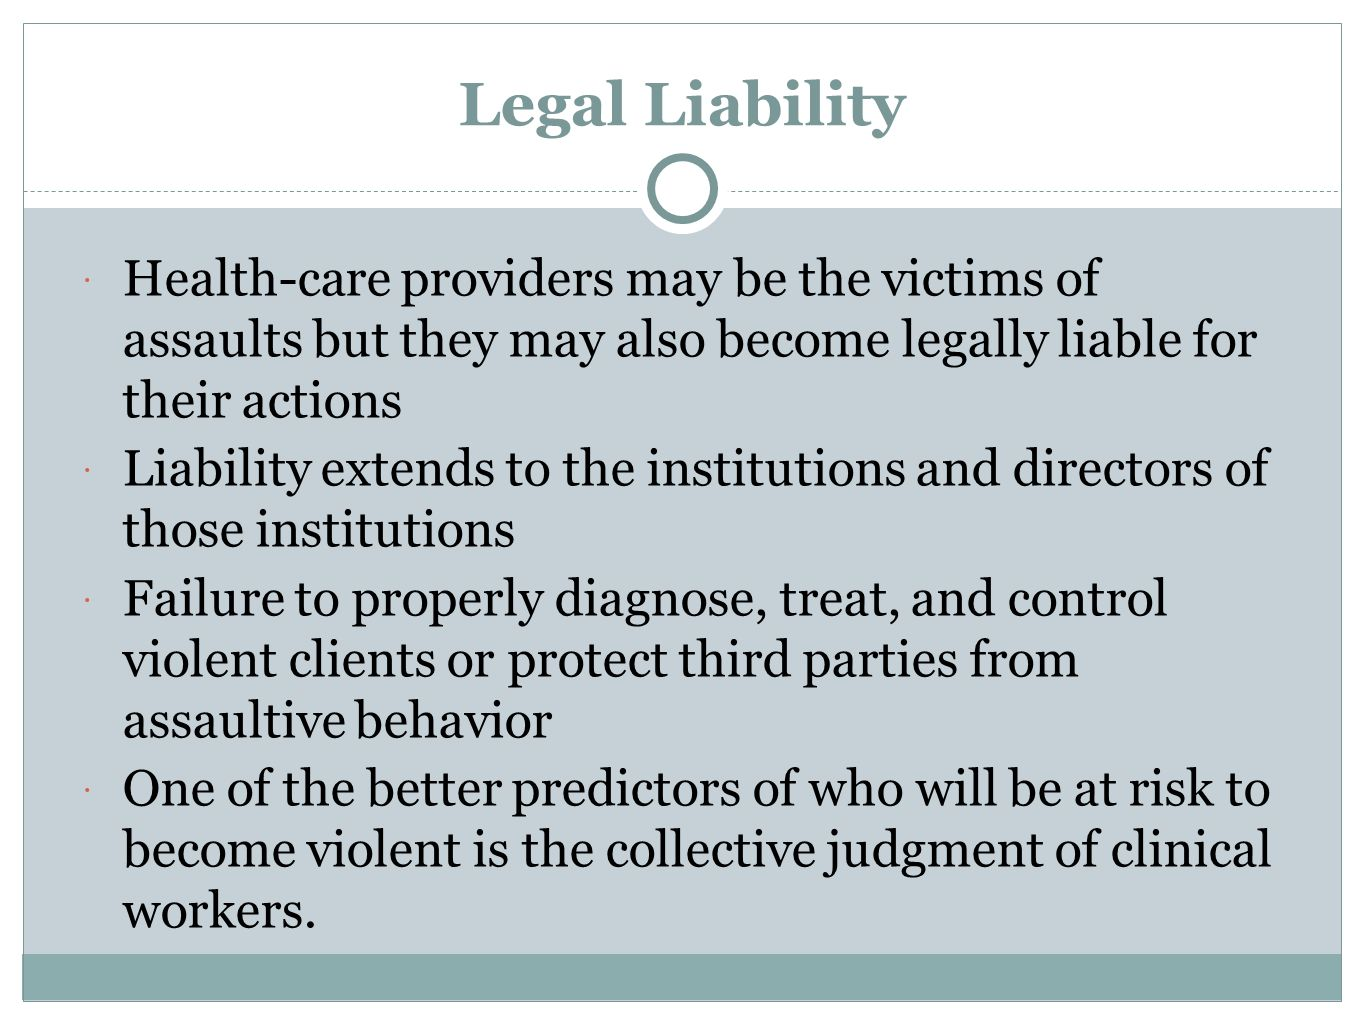 Legal Liability Health-care providers may be the victims of assaults but they may also become legally liable for their actions.